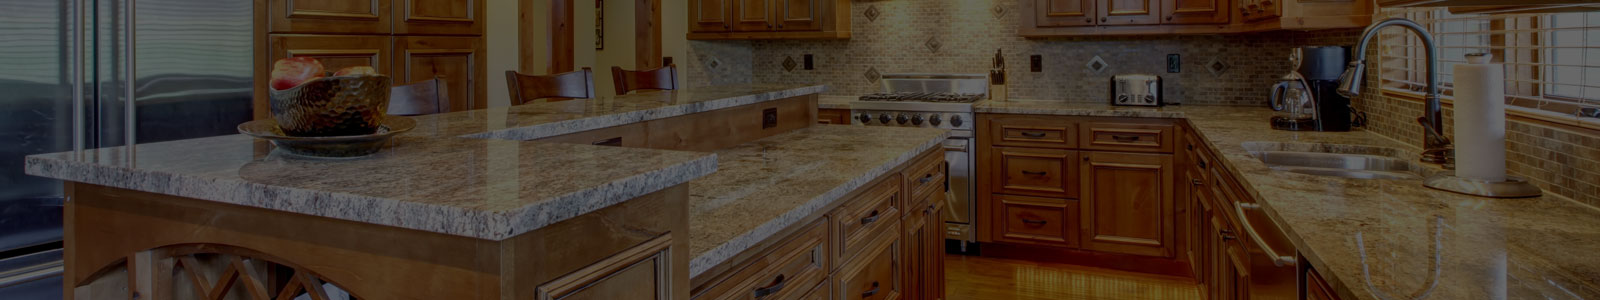 Kitchen And Bathroom Remodeling In Houston Texas ABF Remodeling New Bath Remodel Houston